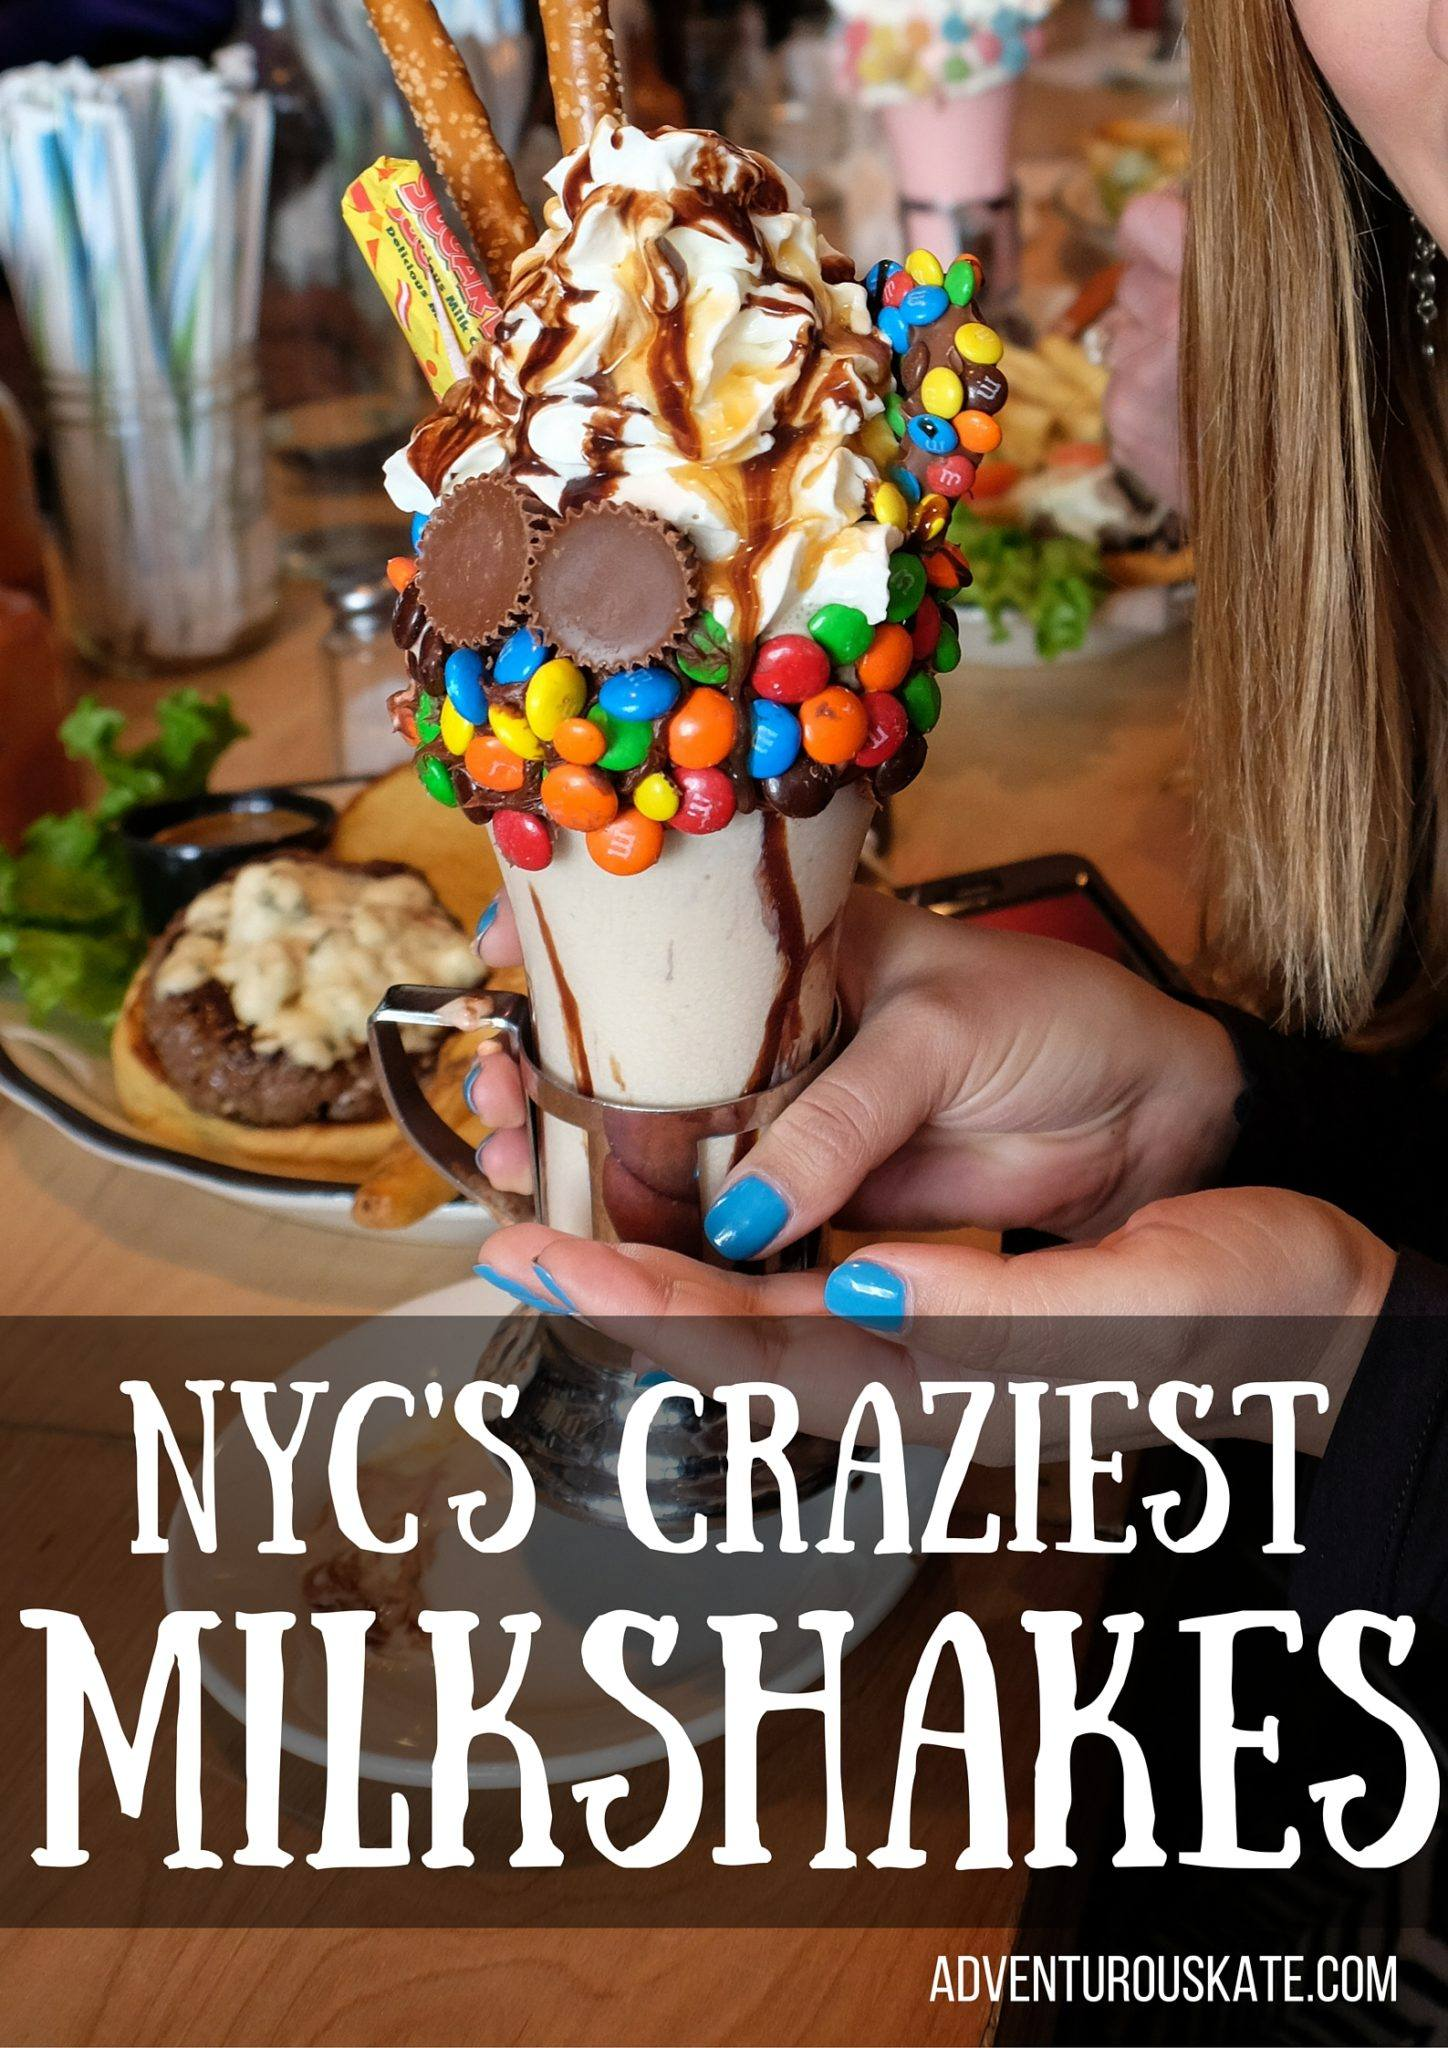 NYC's Craziest Milkshakes -- Adventurous Kate